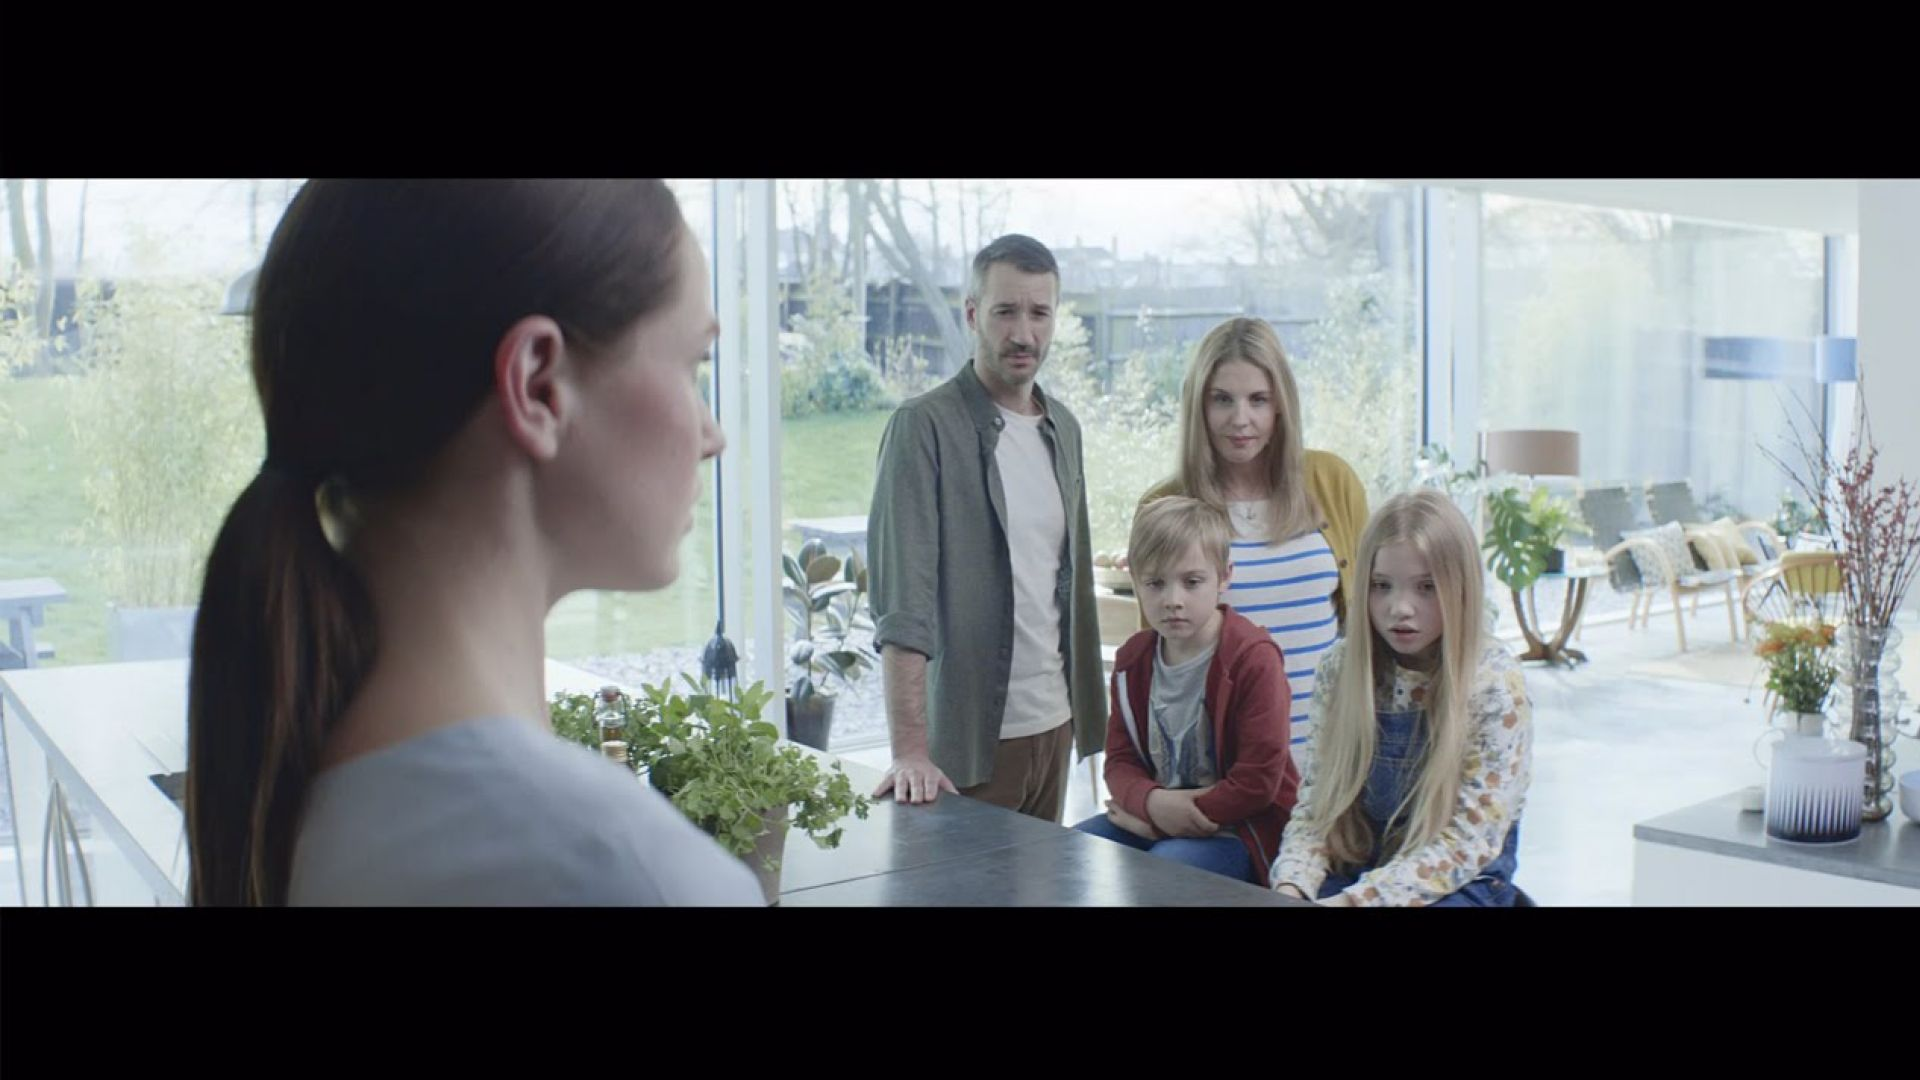 Humans commercial takes closer look at the artificial intell